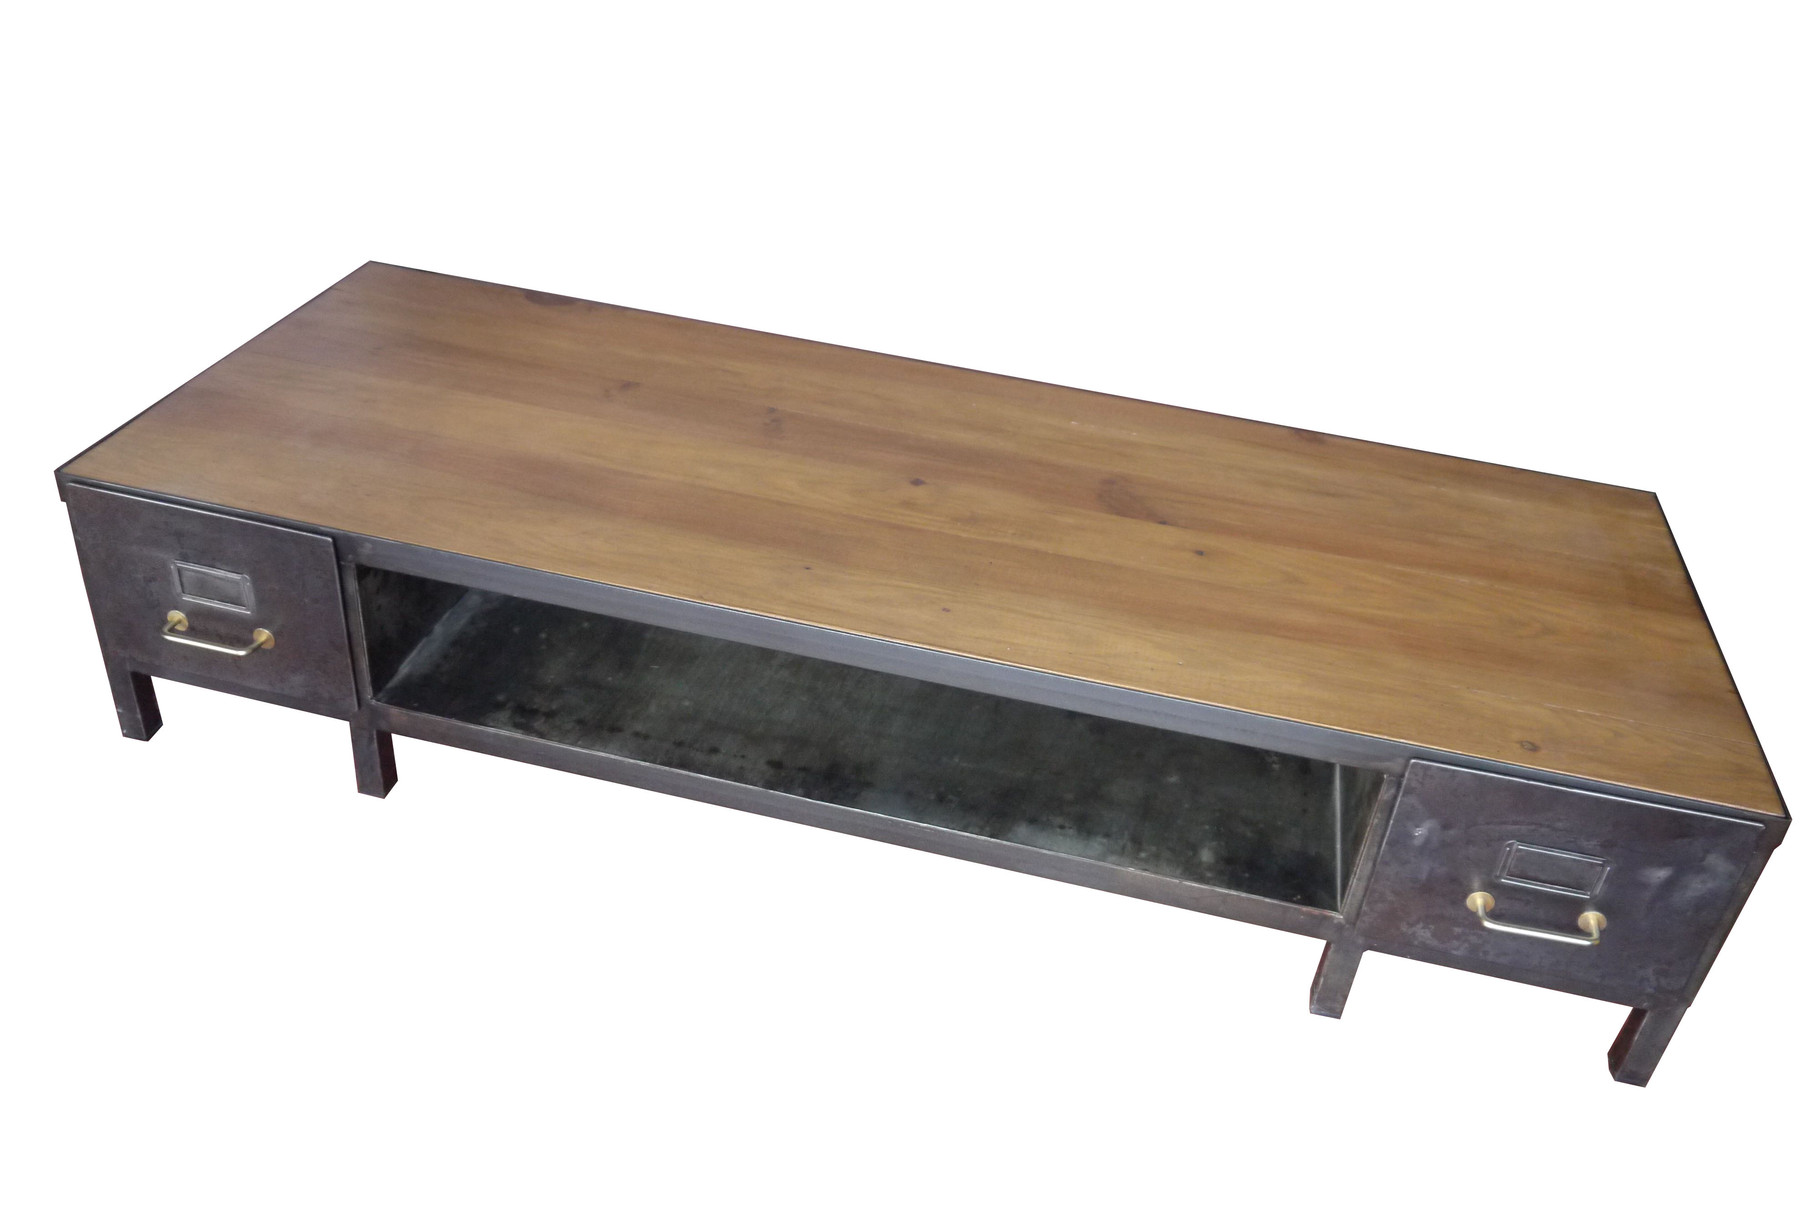 Meuble Table Basse Urbantrott Com # Meuble Tv Luminescence